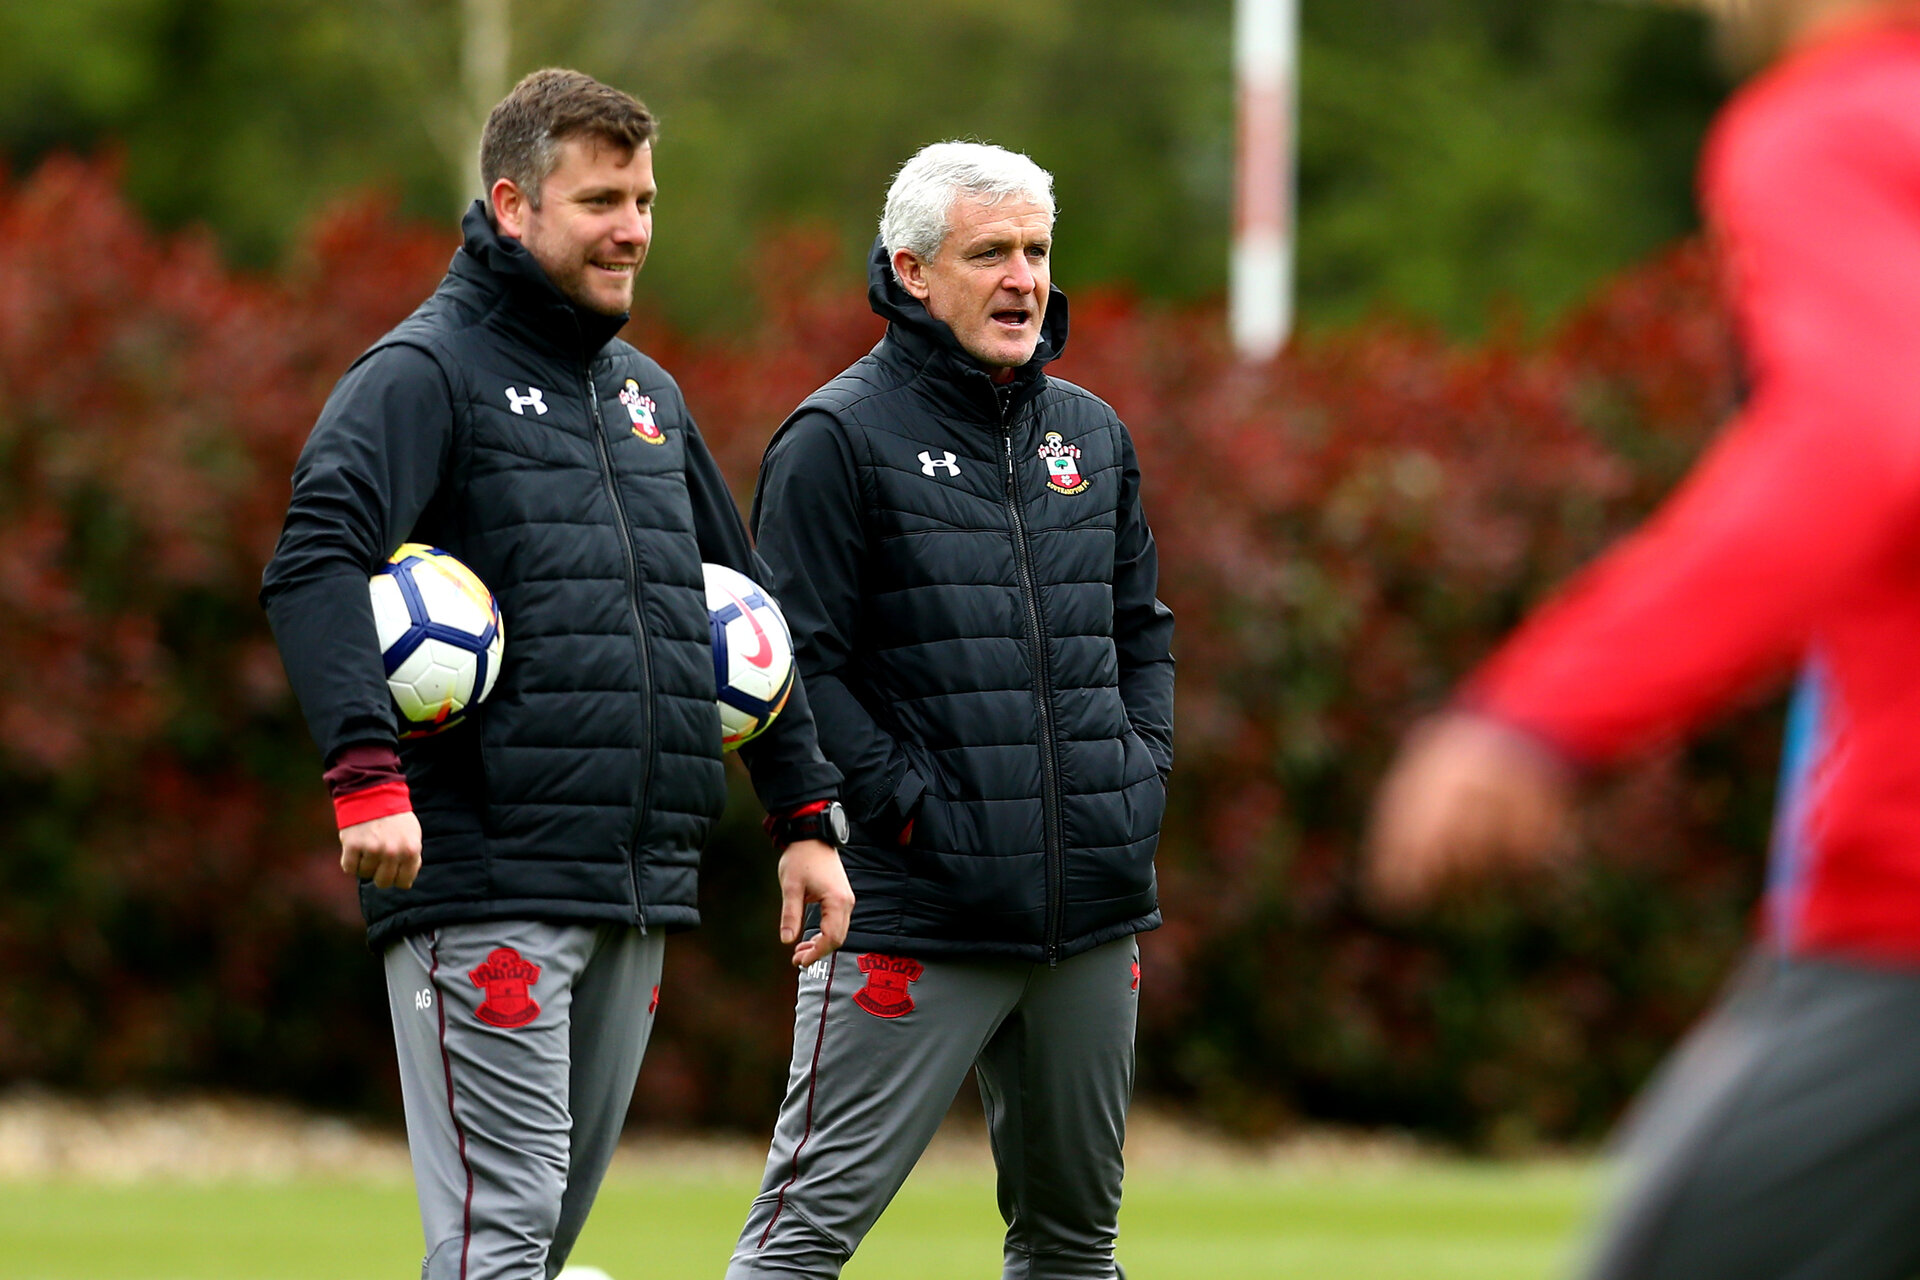 SOUTHAMPTON, ENGLAND - APRIL 30: LtoR Alek Gross, Mark Hughes during a Southampton FC Training session at Staplewood Complex on April 30, 2018 in Southampton, England. (Photo by James Bridle - Southampton FC/Southampton FC via Getty Images)